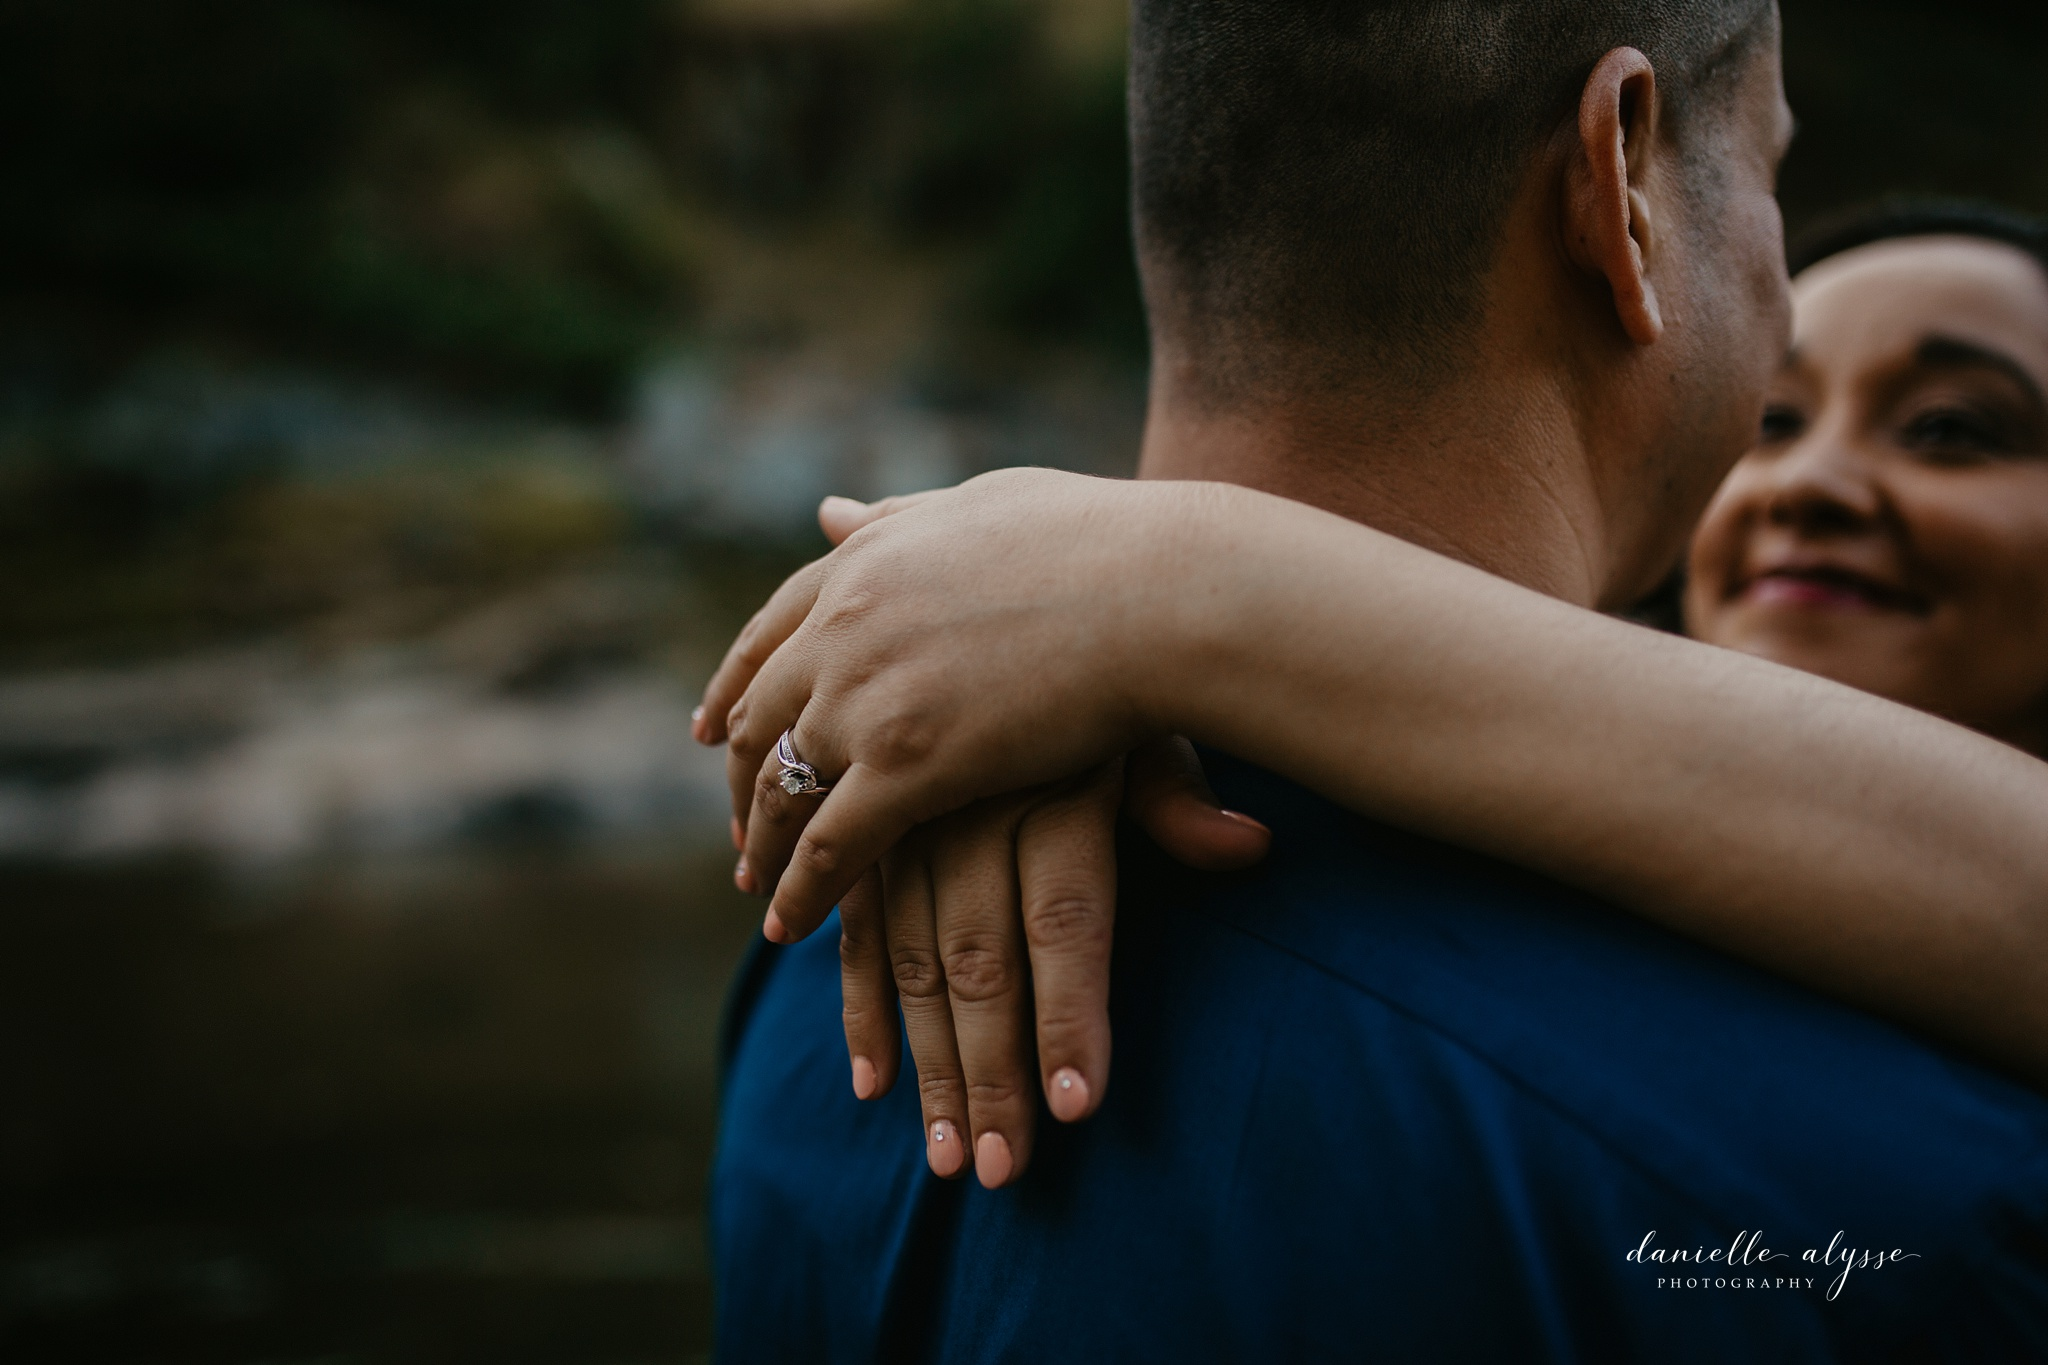 180425_engagement_monica_auburn_water_falls_auburn_danielle_alysse_photography_sacramento_photographer_blog_75_WEB.jpg